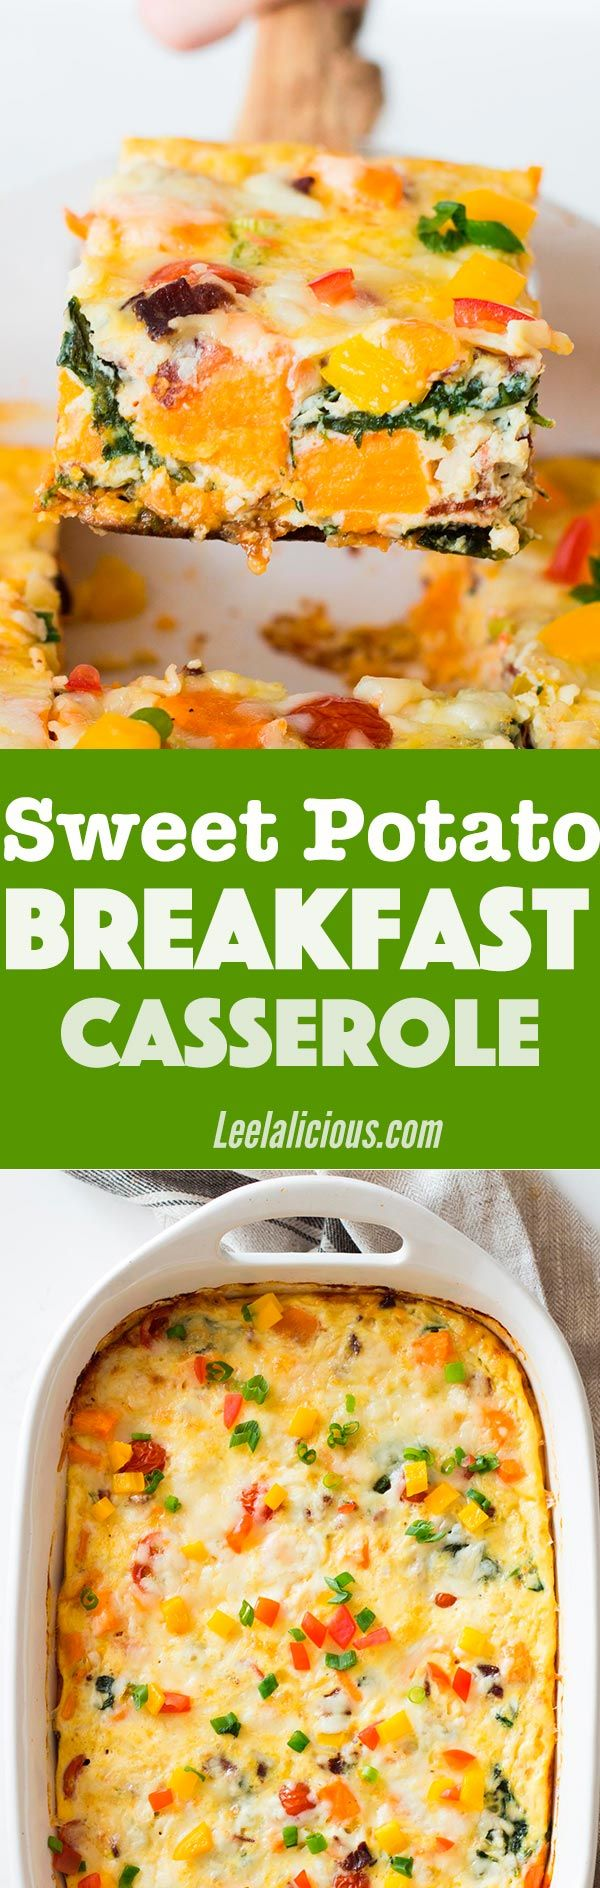 This healthy Sweet Potato Breakfast Casserole with eggs, bacon, spinach and more veggies is a perfect meal to feed a crowd. The overnight option makes it ideal for the holidays.  Sponsored | Brunch Recipes | Brunch | Make Ahead | Christmas Morning | Cheese | Comfort Foods | Meal Prep